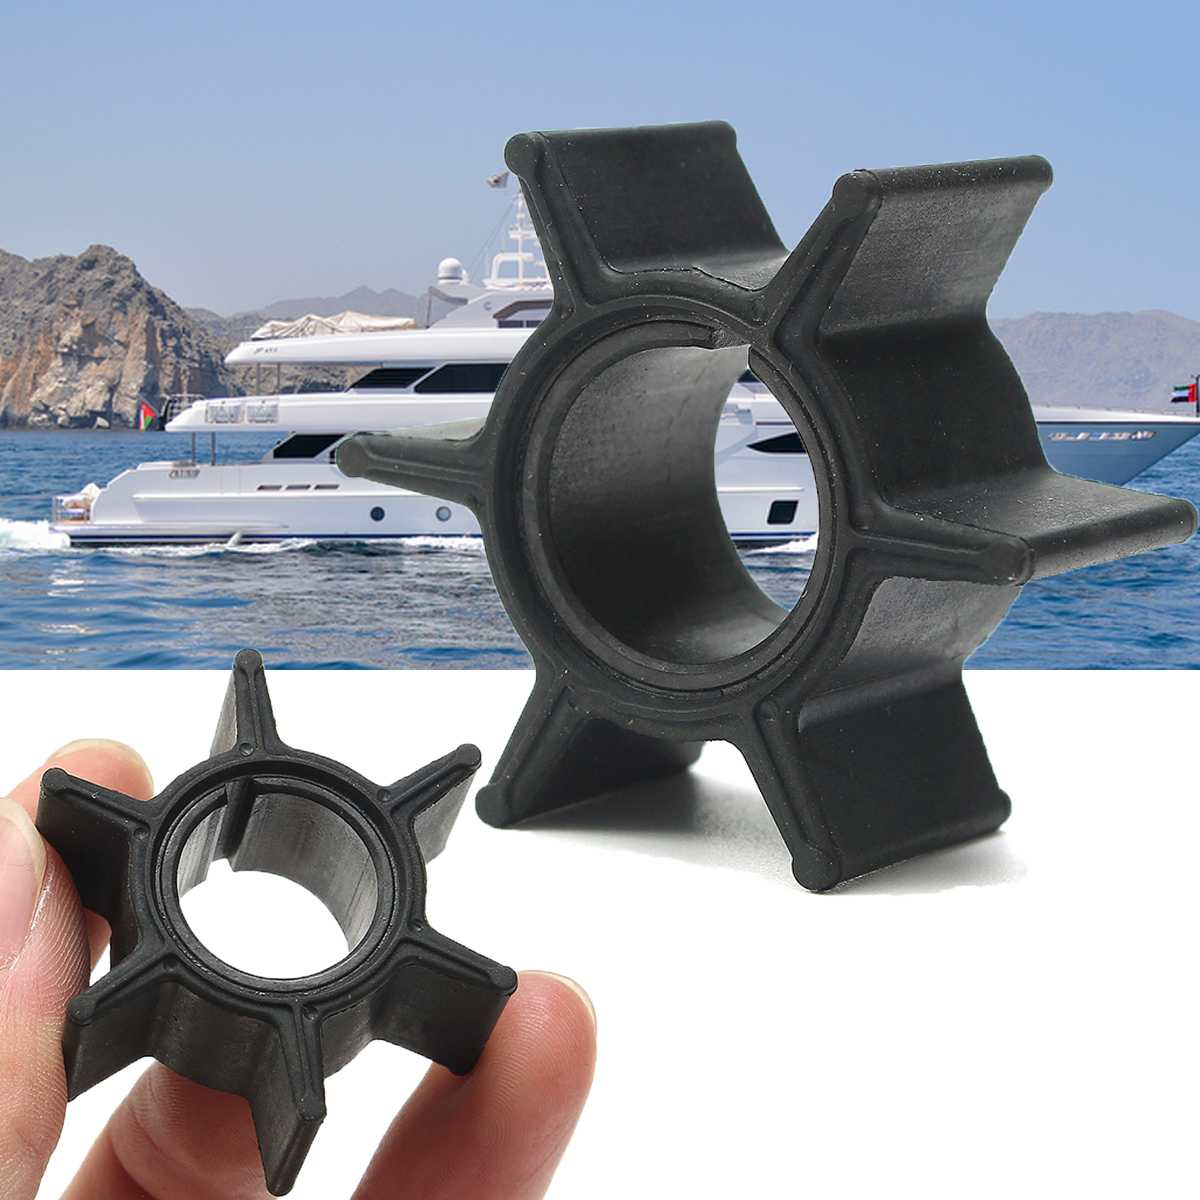 Createshao Impeller Replacement 345-65021-0 345650210 3R0650210M 18-8923 for Nissan Tohatsu 25 30 35 40 HP for Mercury Mariner Mercruiser 47-161541; 47-161541 Replacement